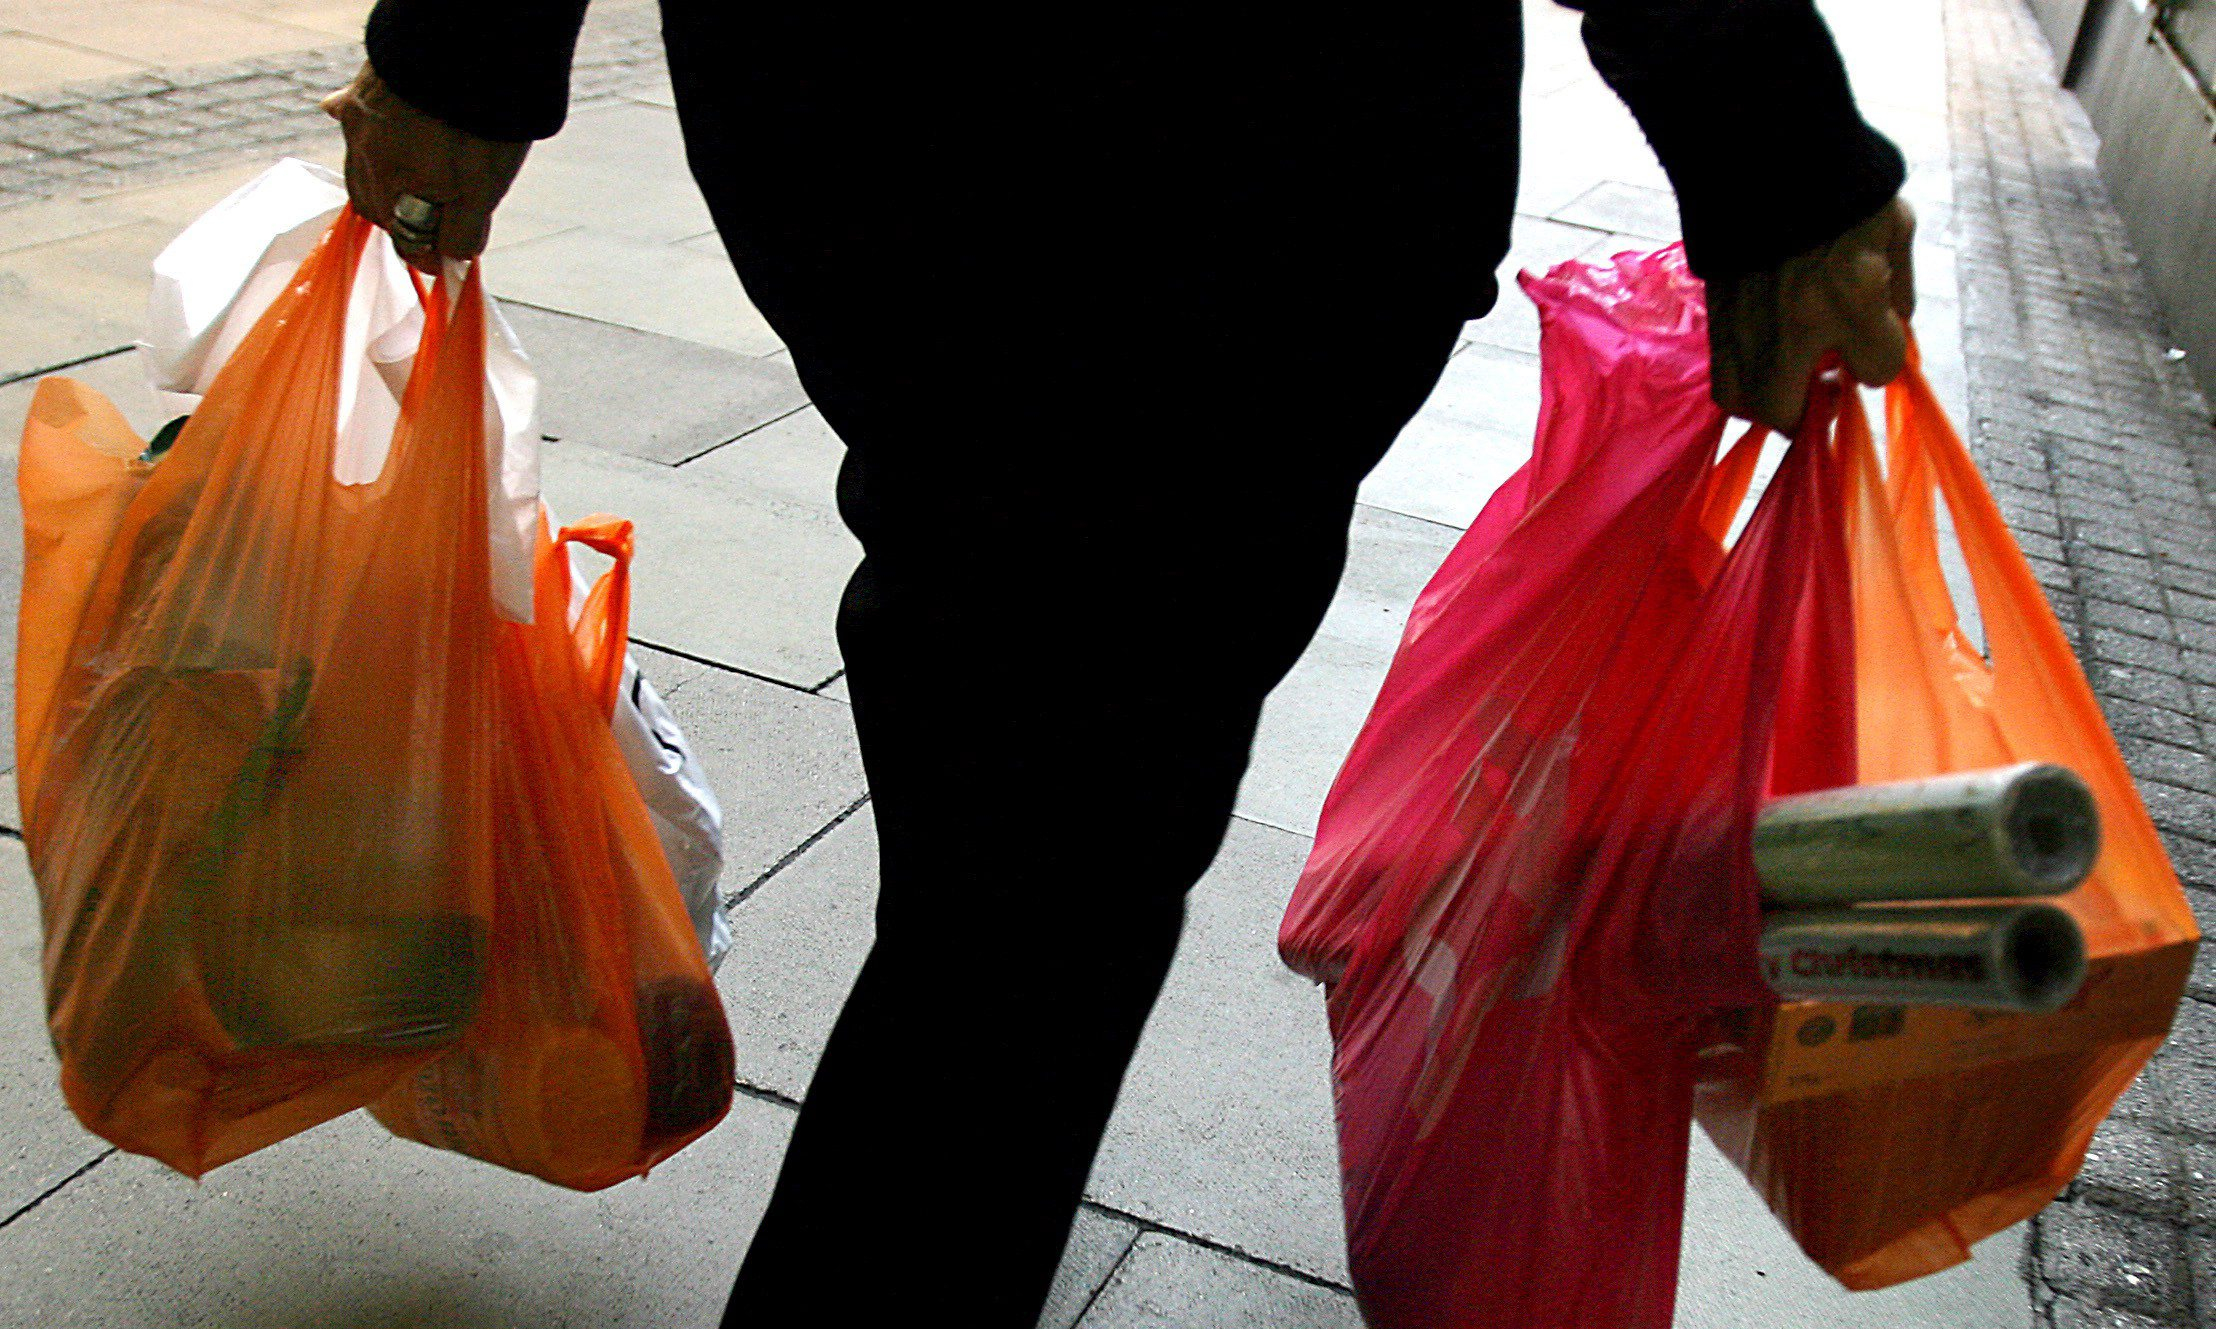 Realistic Ways To Break-Up With Plastic